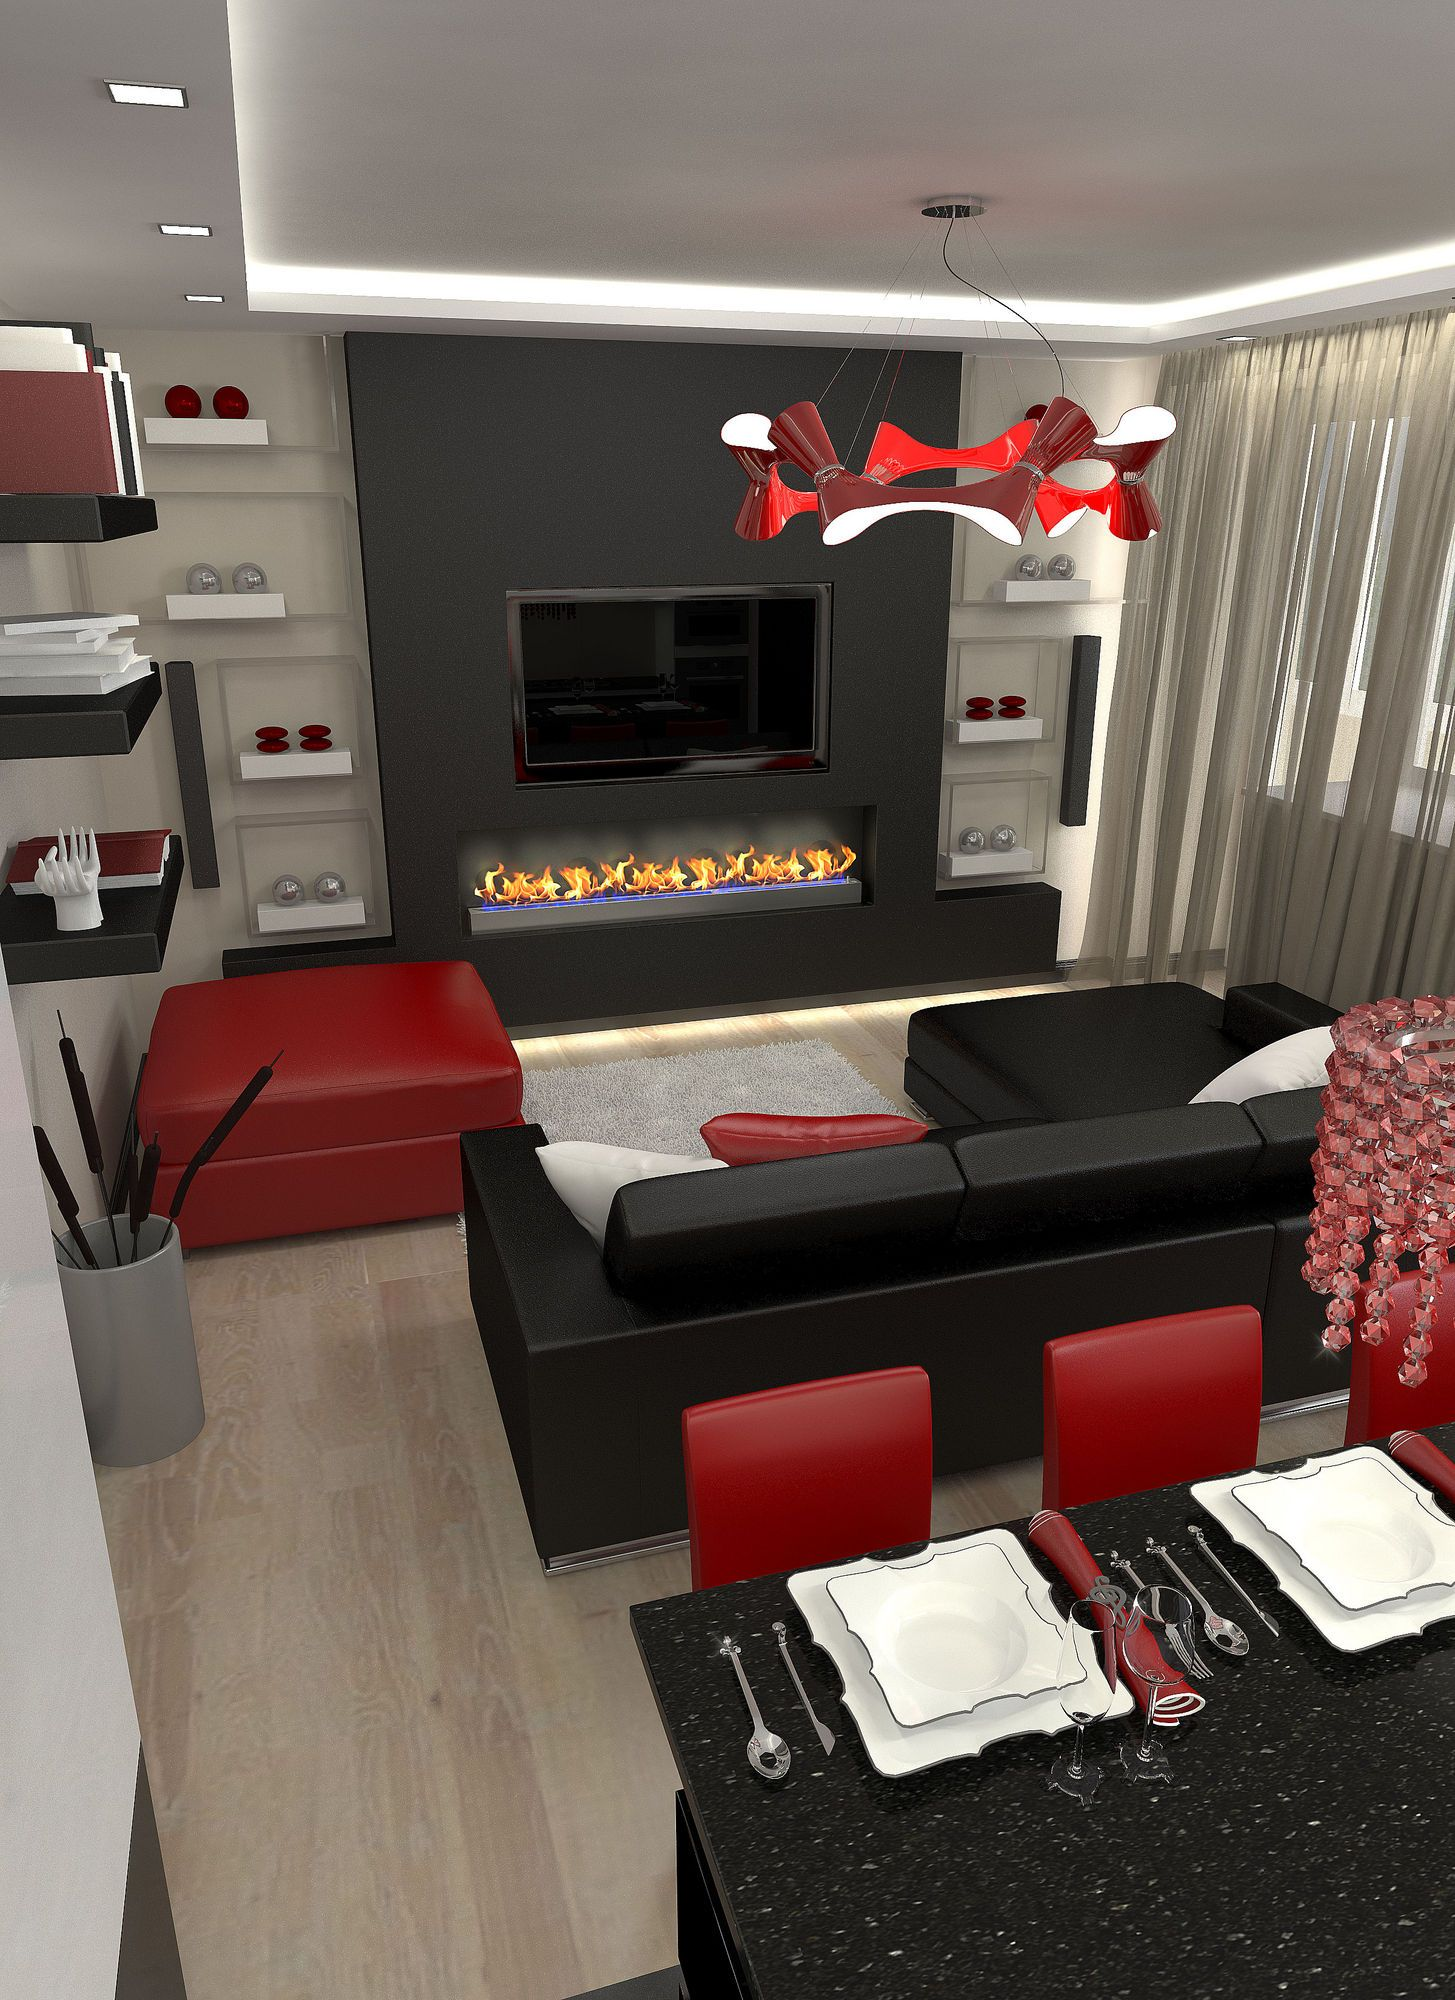 Incridible Elegant Red White And Black Living Room L Ecfceca By